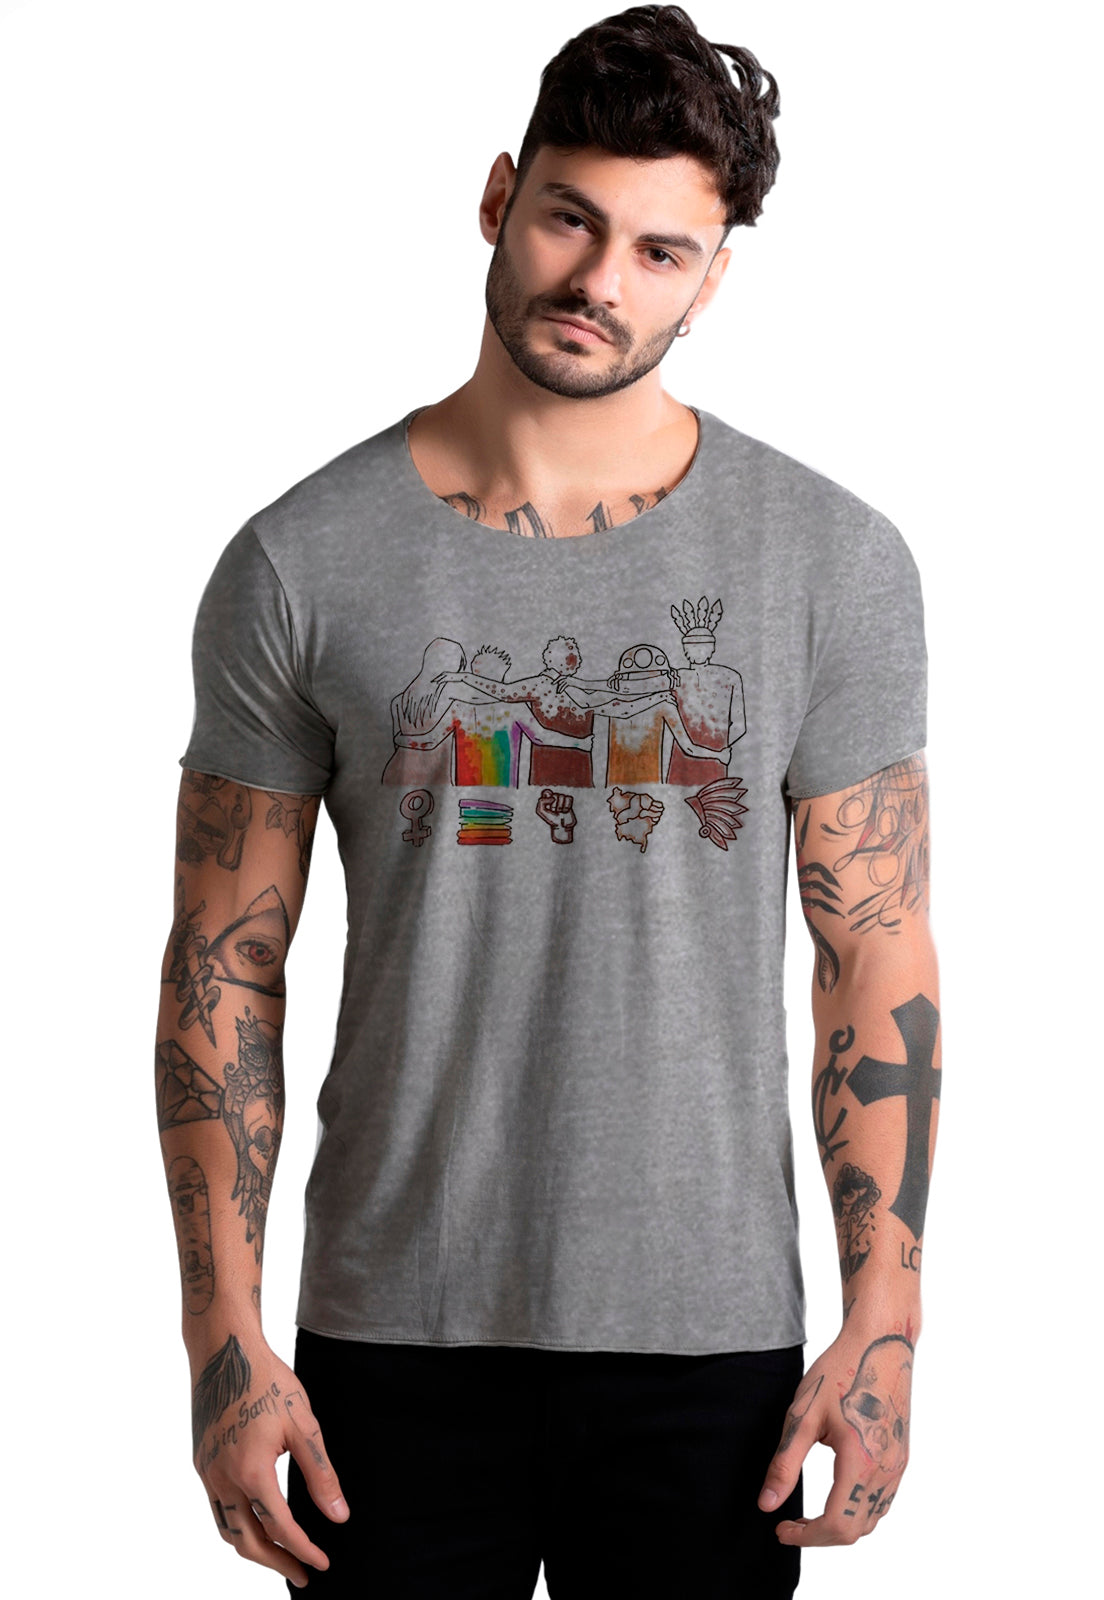 CAMISETA MASCULINA CORTE A FIO - WE ARE THE SAME DTG